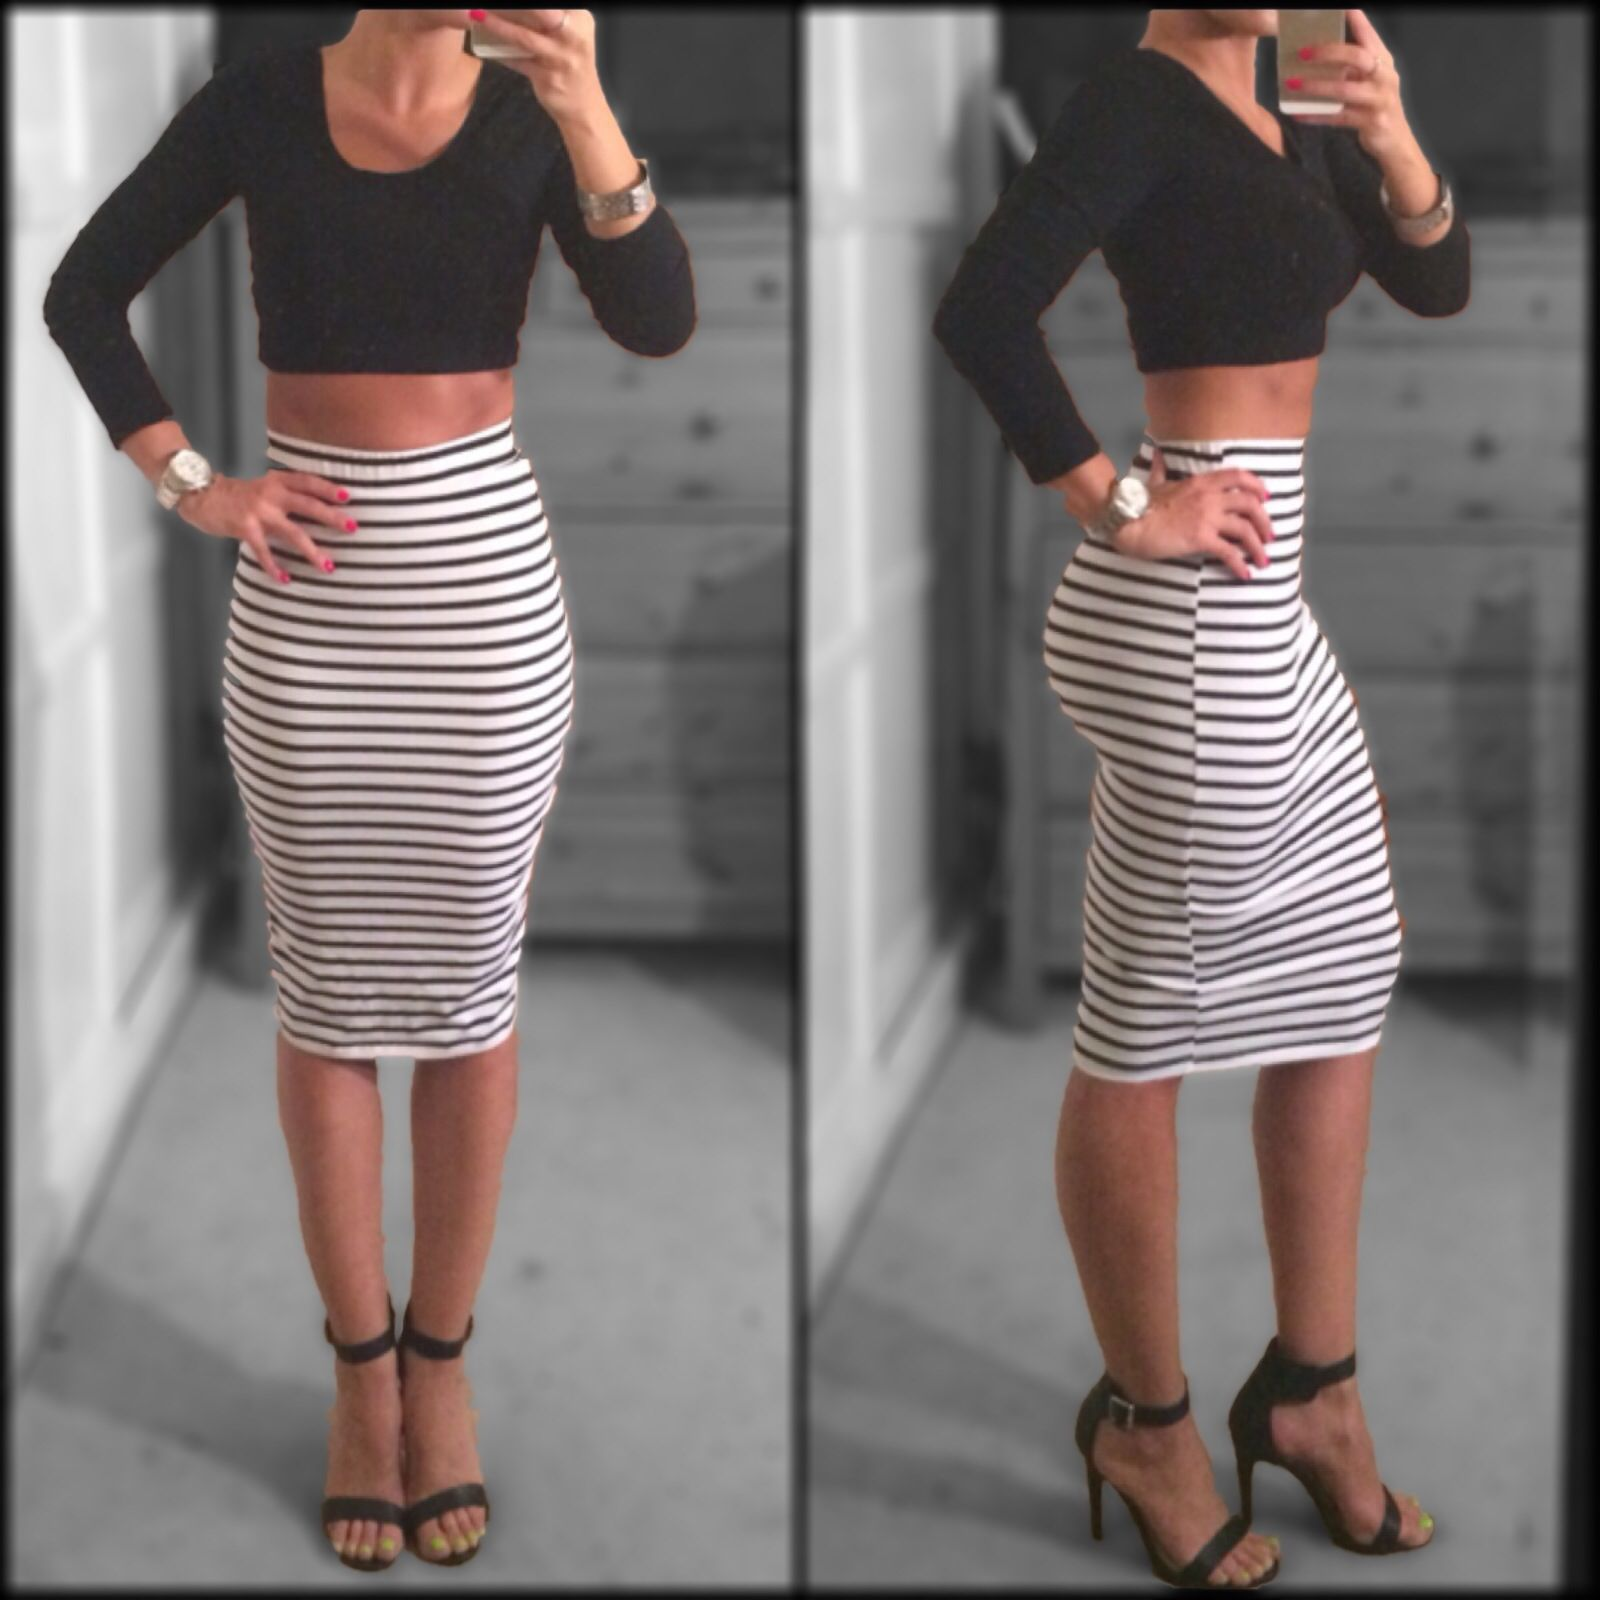 High Waisted Knee Length Black And White Striped Skirt Black Crop